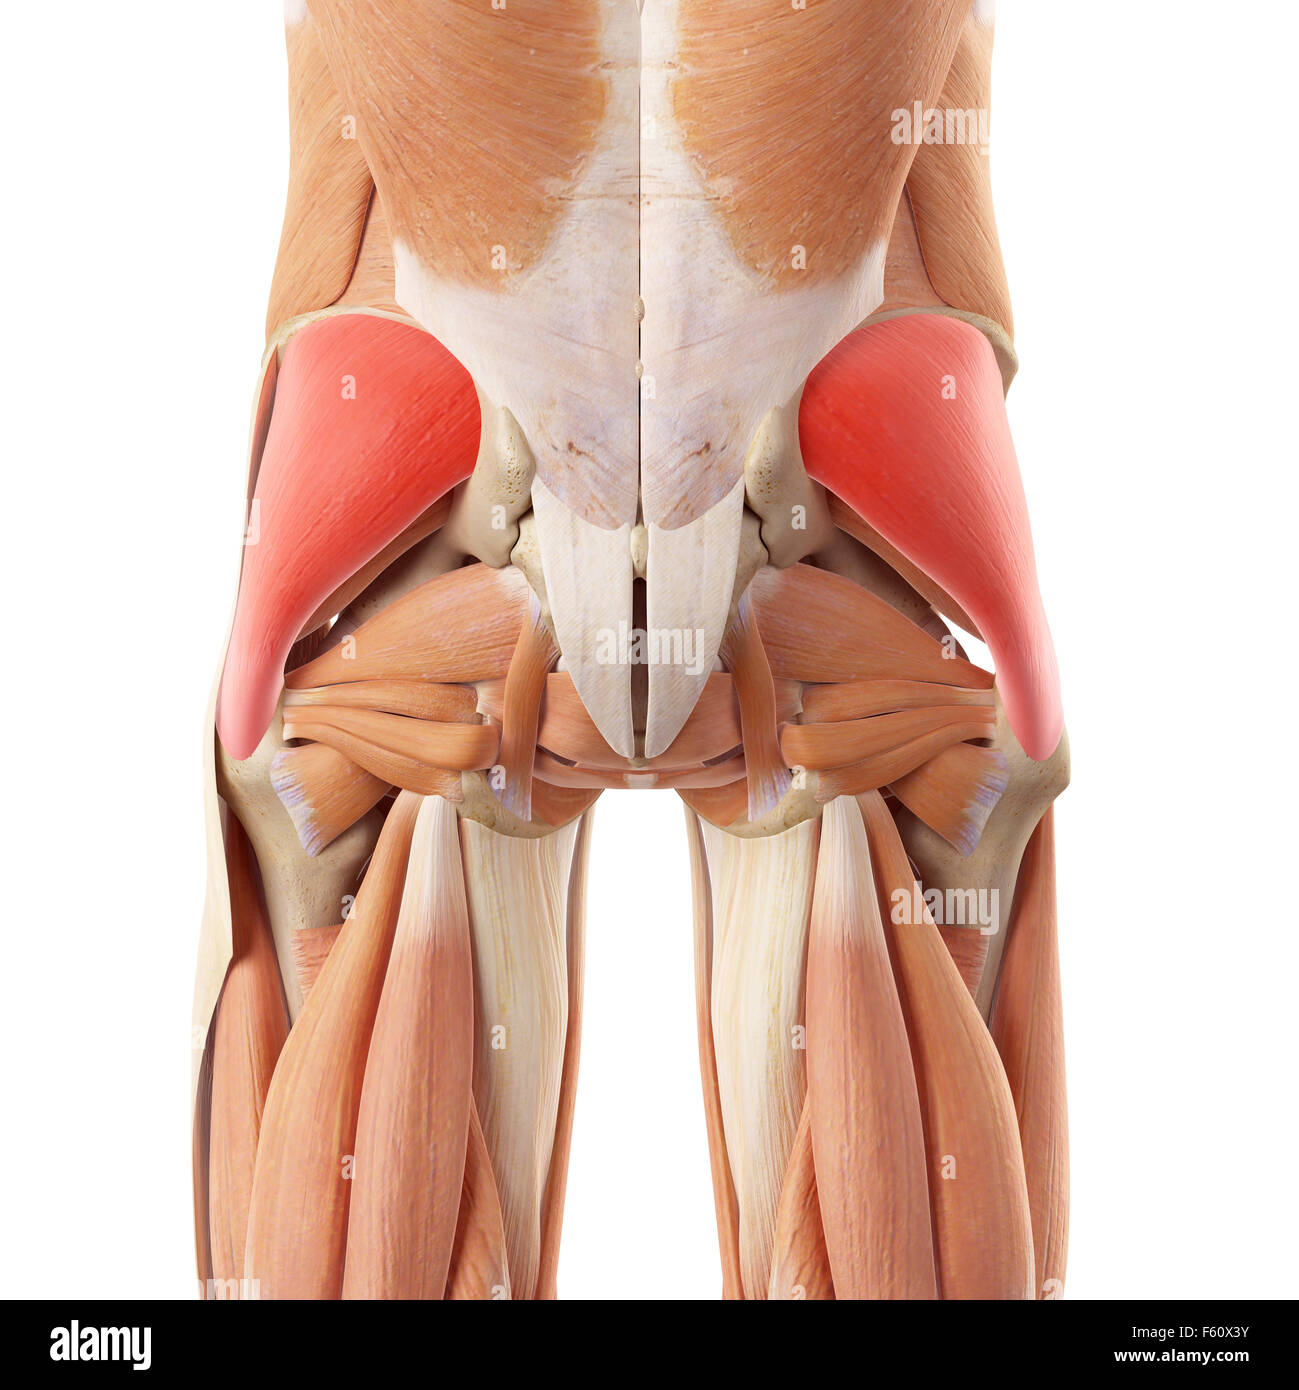 Gluteus Muscle Stock Photos & Gluteus Muscle Stock Images - Alamy